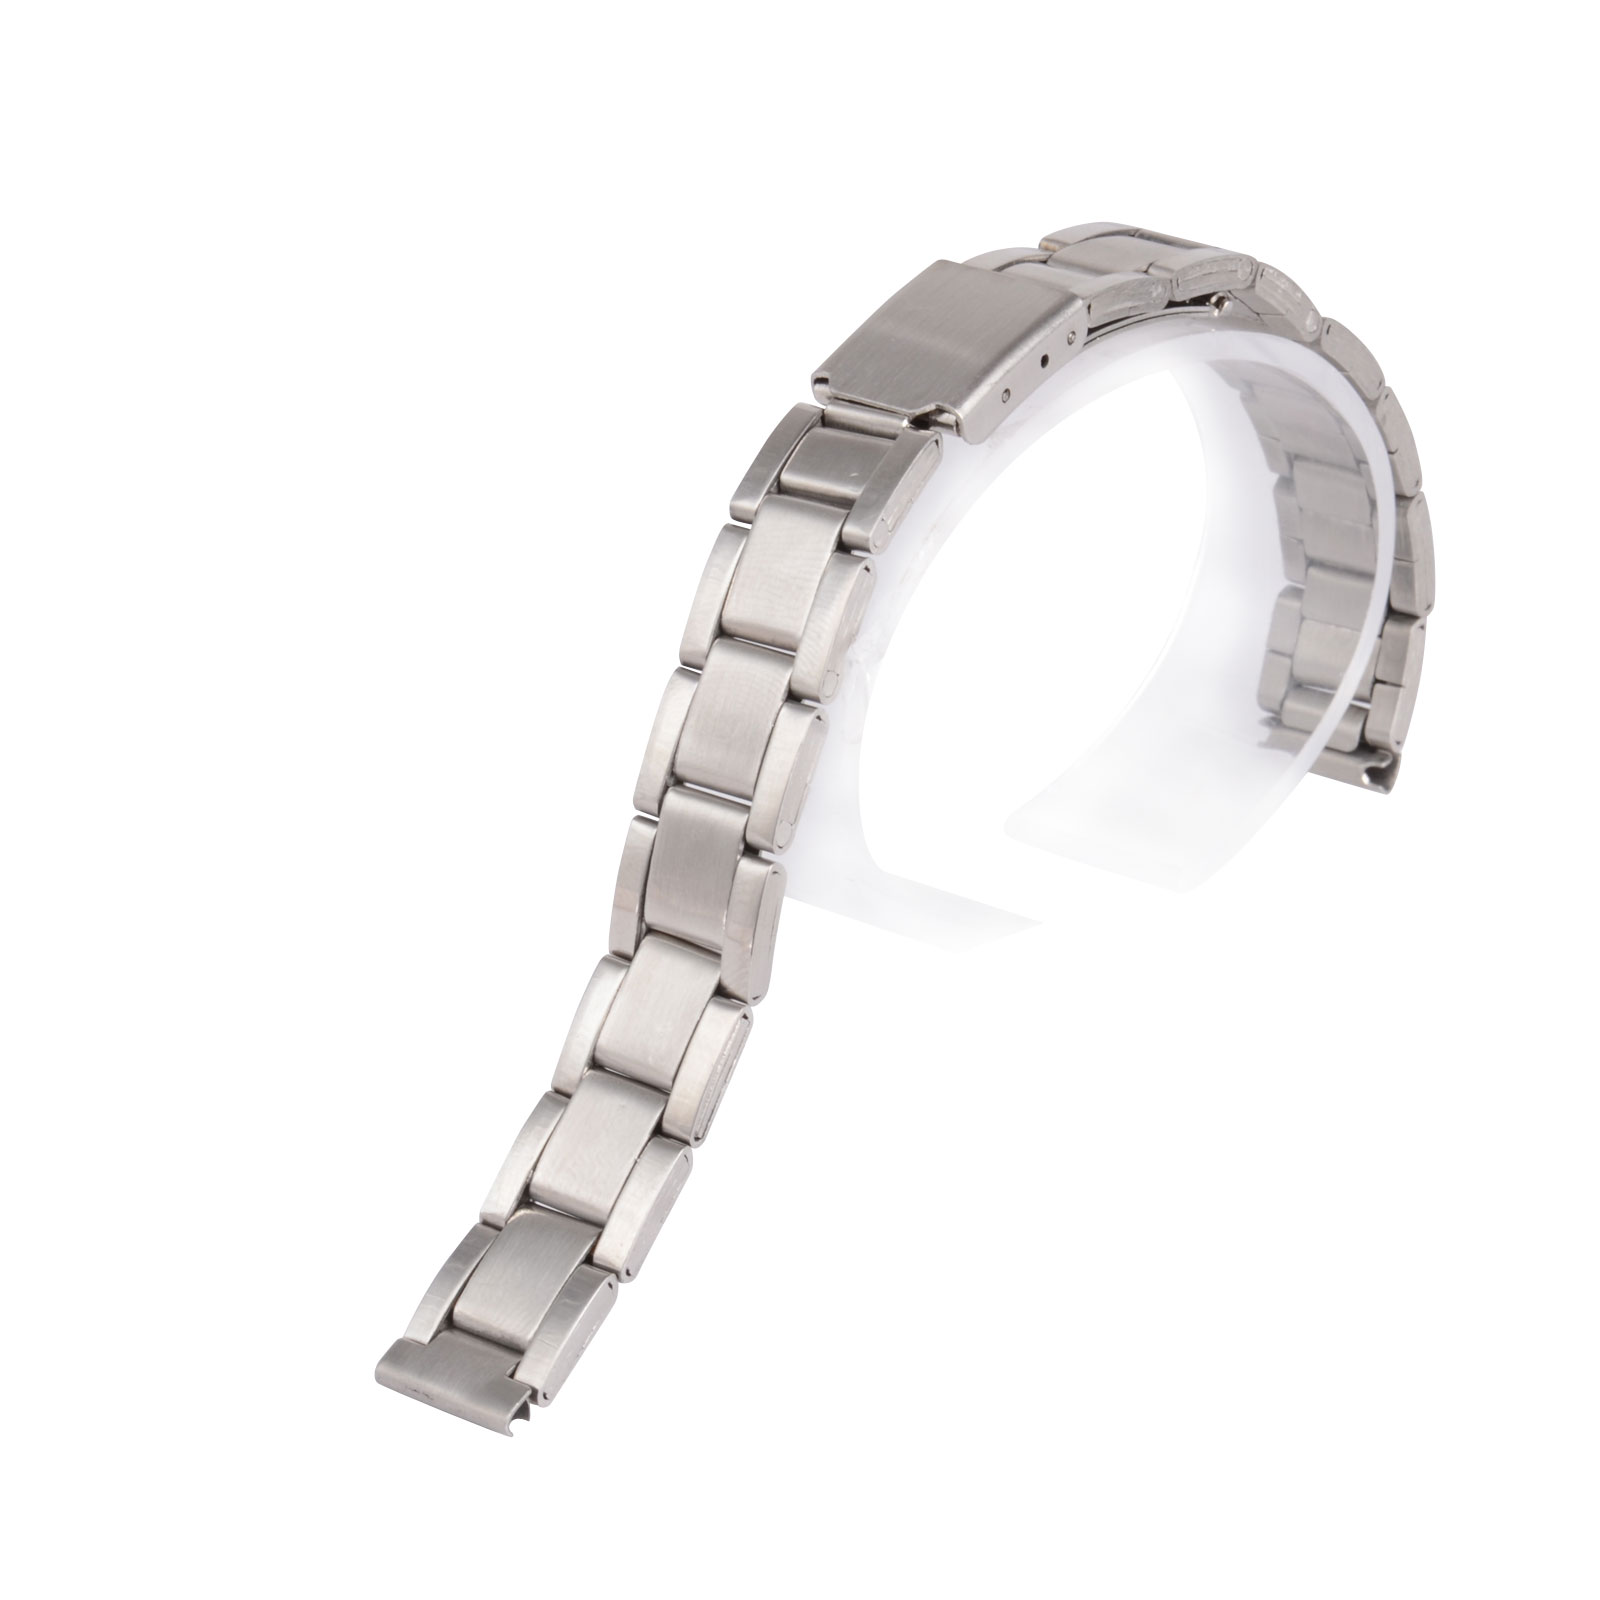 12 14 16 18 20 22 24mm Silver Stainless Steel Straight End Replacement Band Strap  Folding Clasp Metal Watchband For Men Women